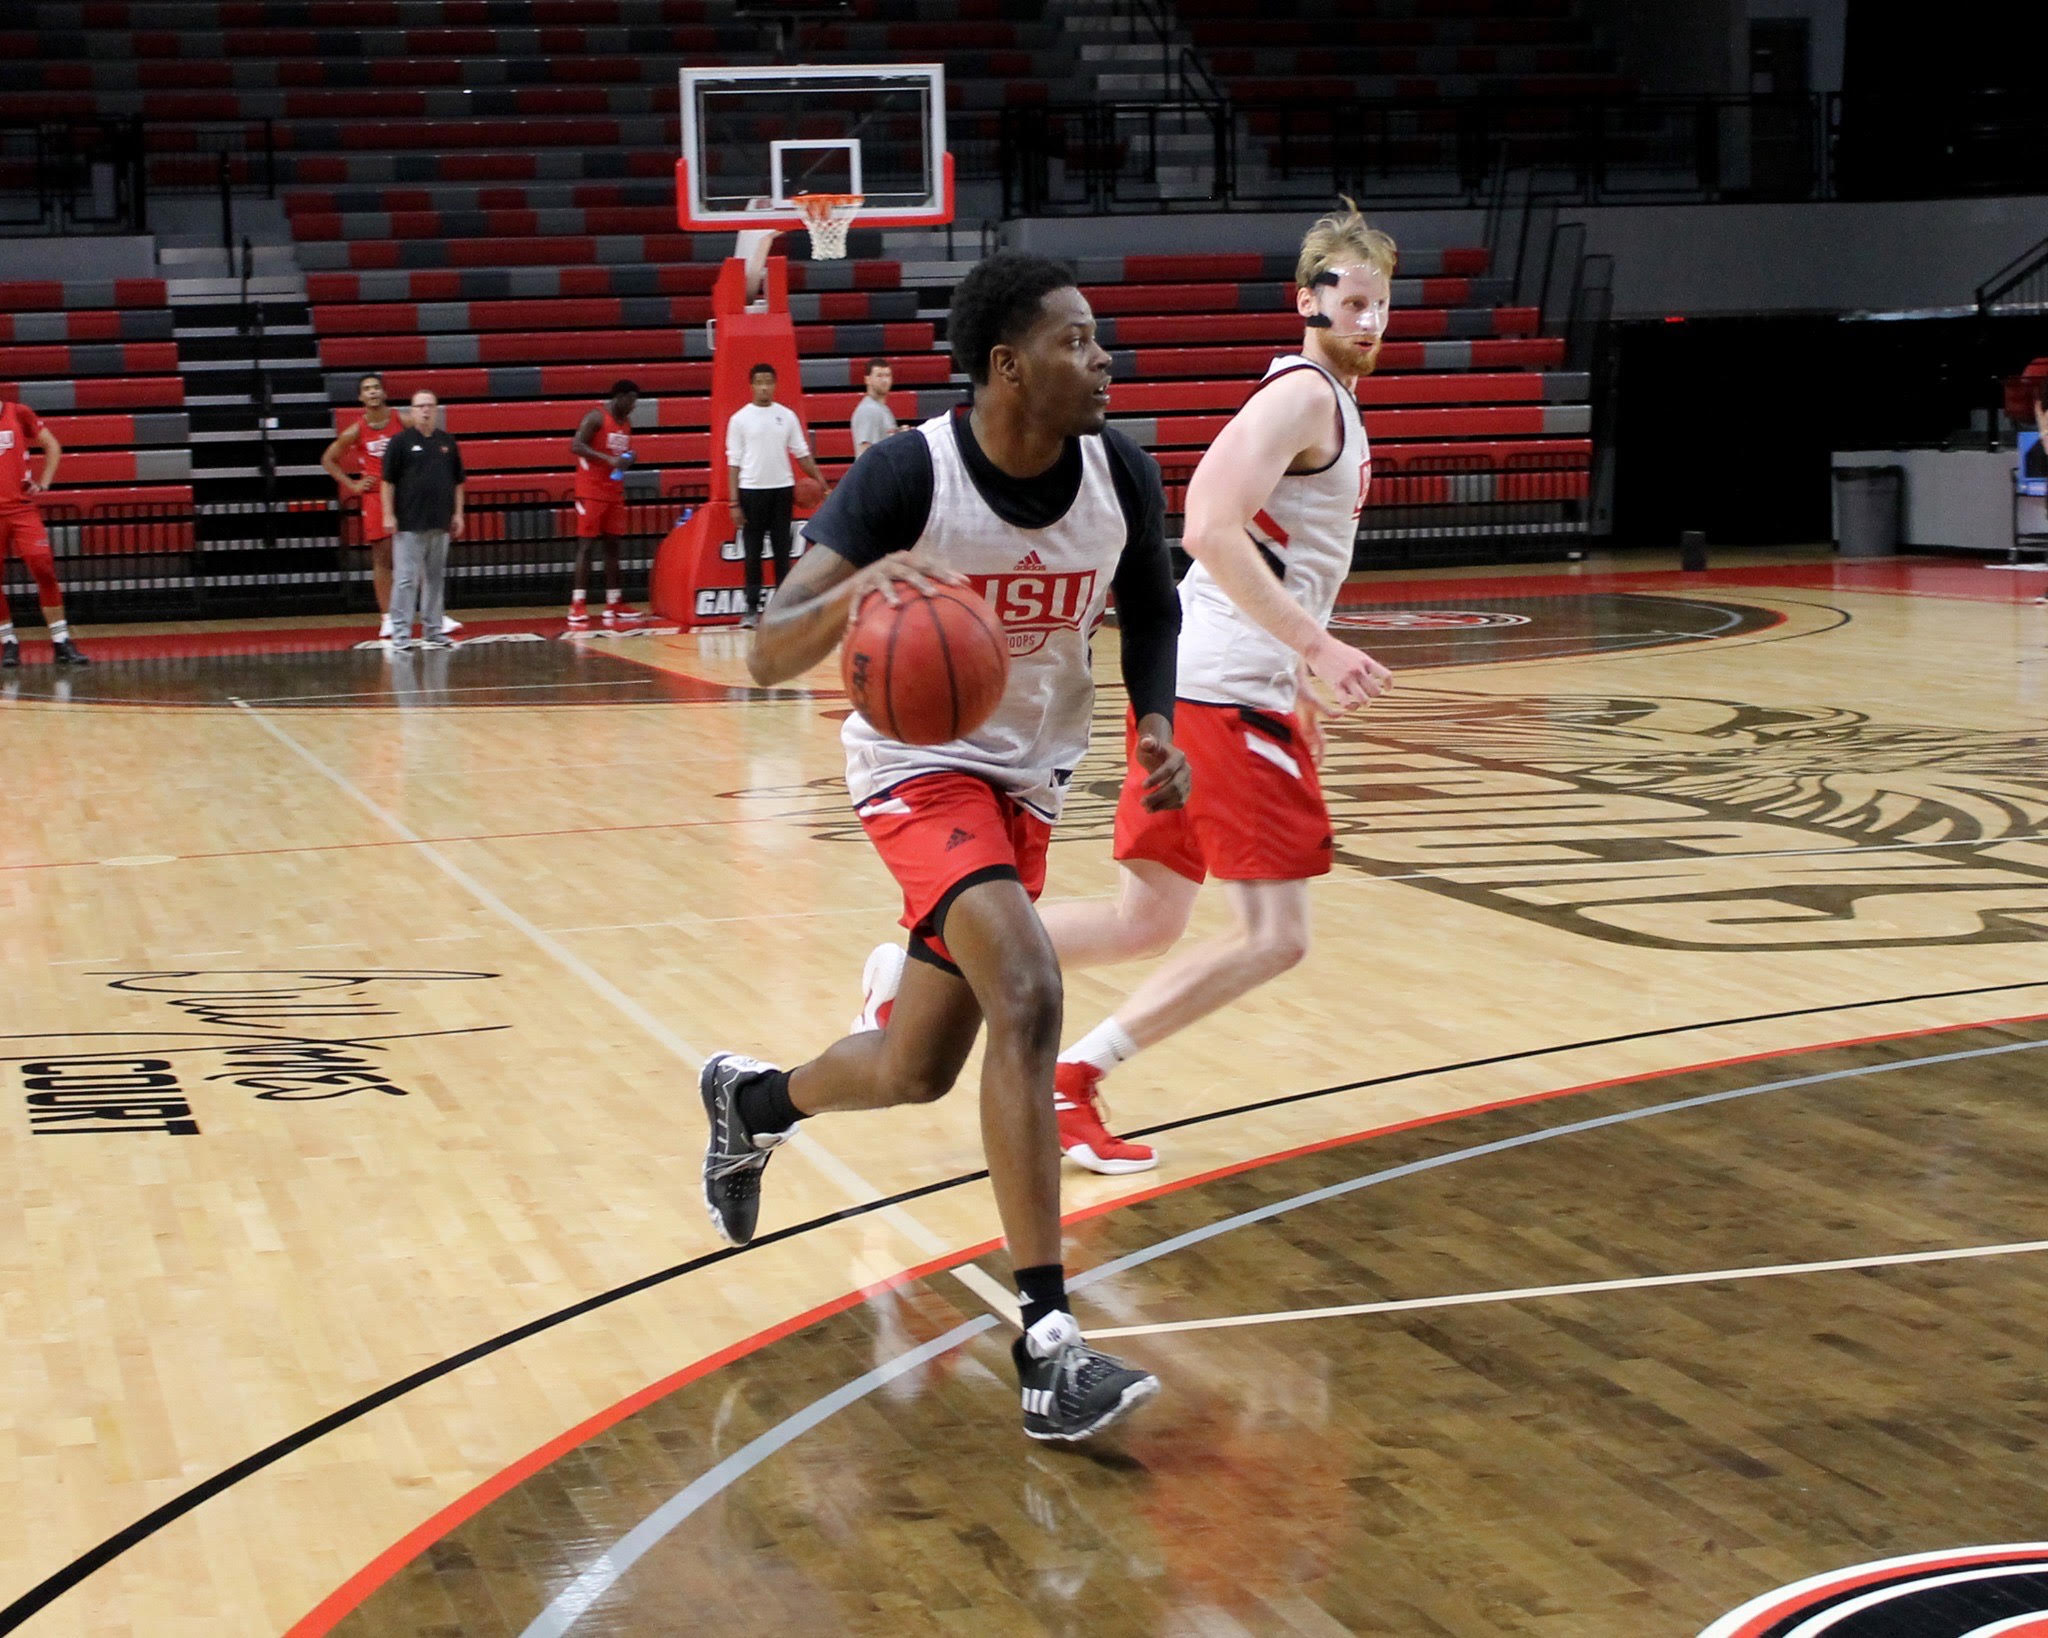 The JSU men's basketball team begins practice in preparation for the 2019-2020 season. (Courtesy of JSU Athletics)